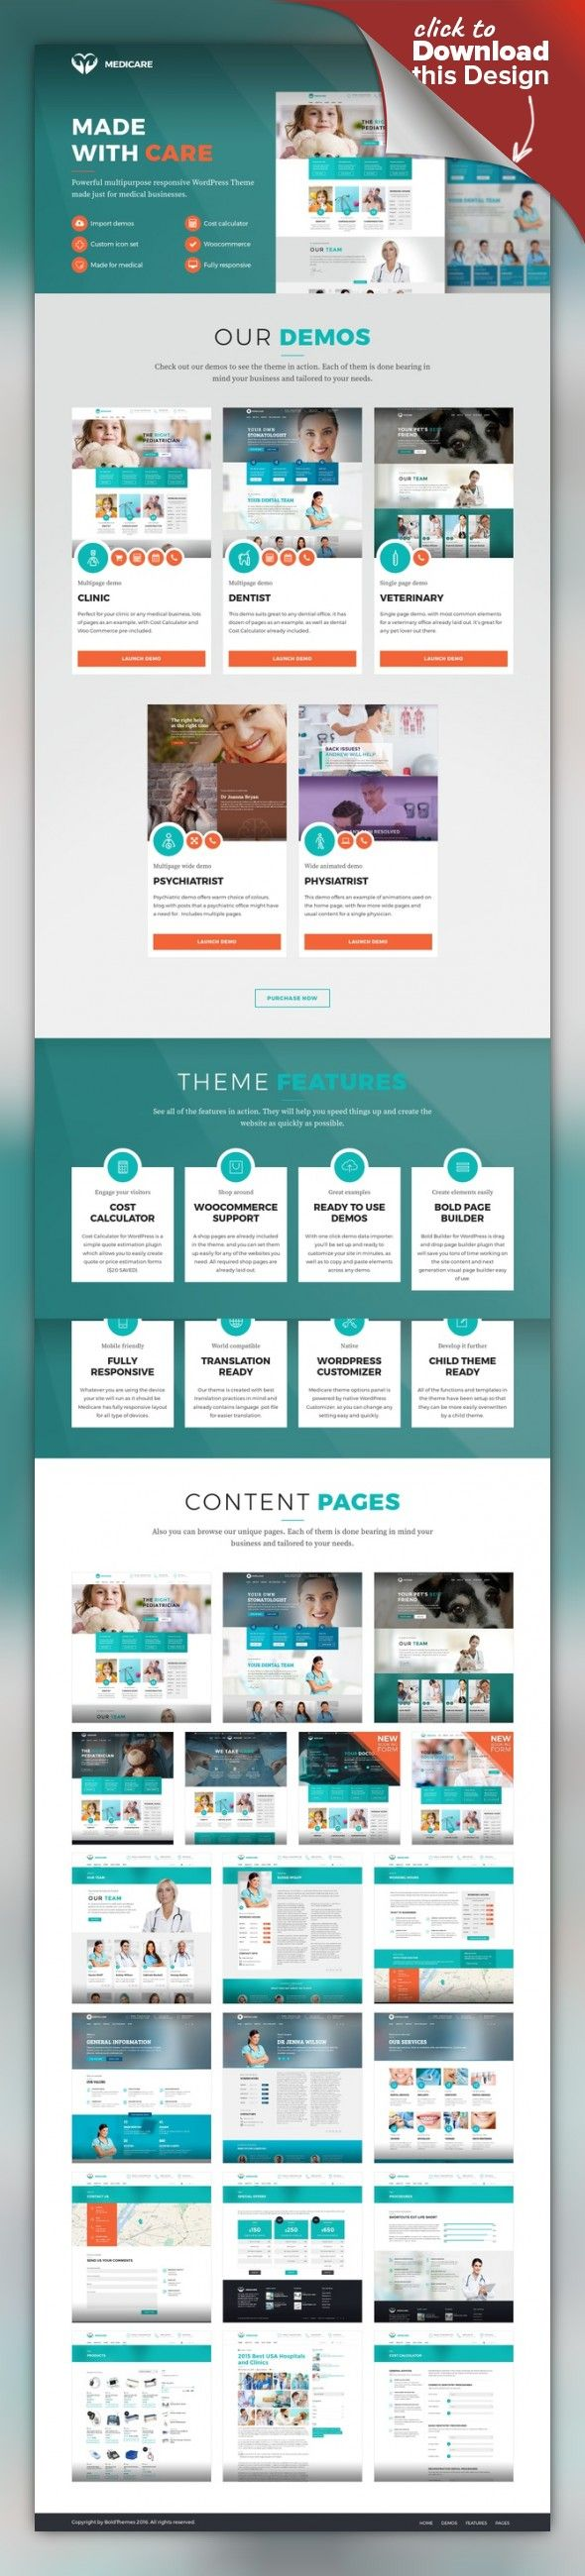 Medicare - Medical & Health Theme care, clean, clinic, corporate, dental, dentist, doctor, health, health care, healthcare, hospital, medical, medicine, vet, veterinary Medicare is a WordPress Theme exclusively built for health, medical, clinic, dental or veterinary services websites. It is fully Responsive, Retina Ready and Easy to customize. New demos included Medicare offers comprehensive options panel, unique page transitions and distin...